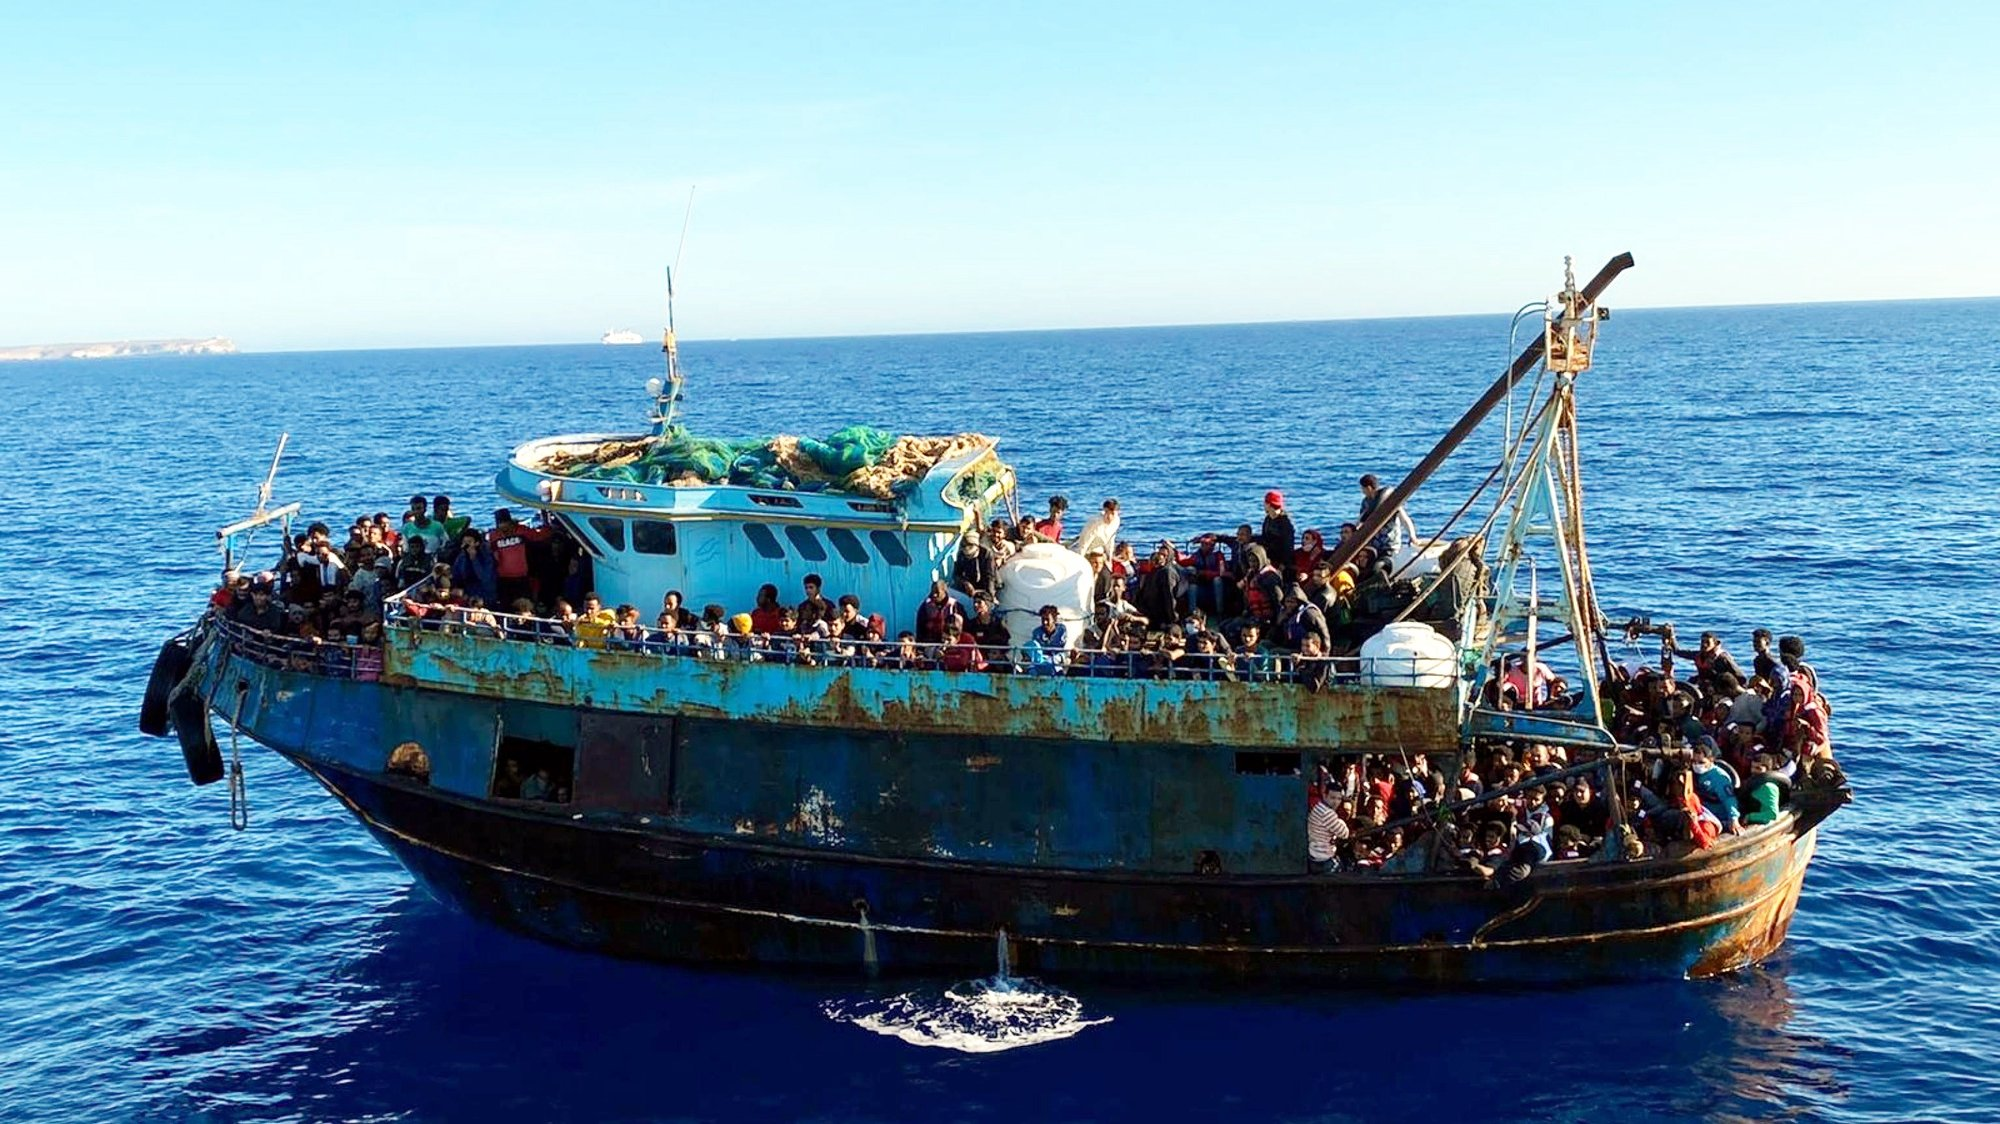 epa09187028 One of the two boats with a total of 415 migrants on board, in Lampedusa, Italy, 09 May 2021. The first wooden boat of 20 meters length, with 325 people on board, was intercepted eight miles off Lampedusa and the second one five miles off the coast and escorted by a security forces patrol boat to Favaloro Pier. On board were 90 migrants of different nationalities, 83 men, 6 women and a newborn baby.  EPA/ANSA